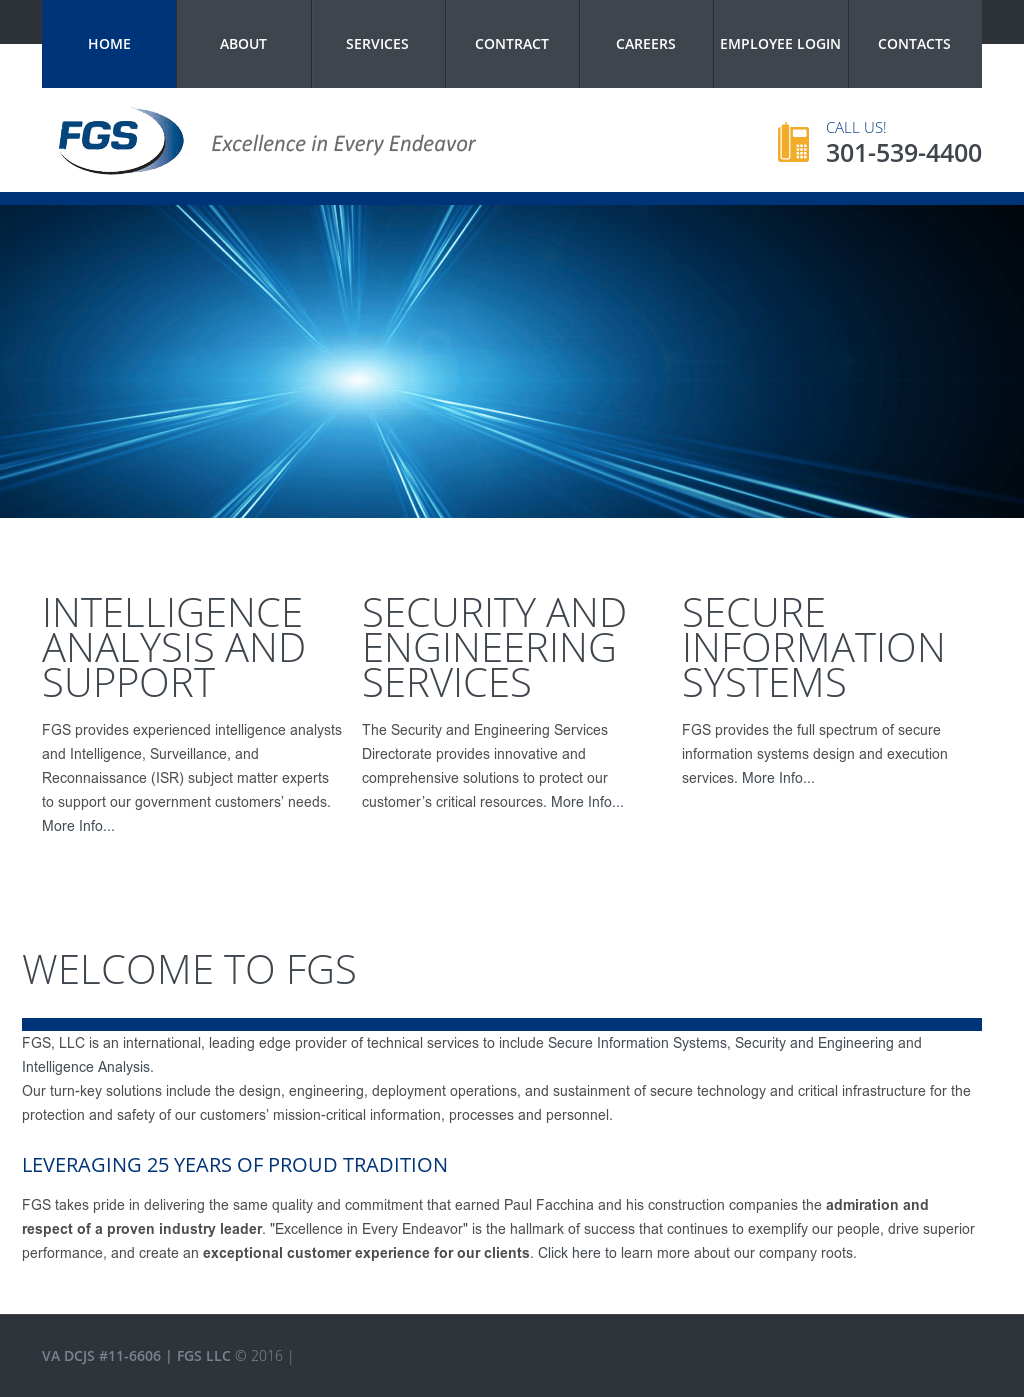 Fgs Security fgs llc competitors, revenue and employees - owler company